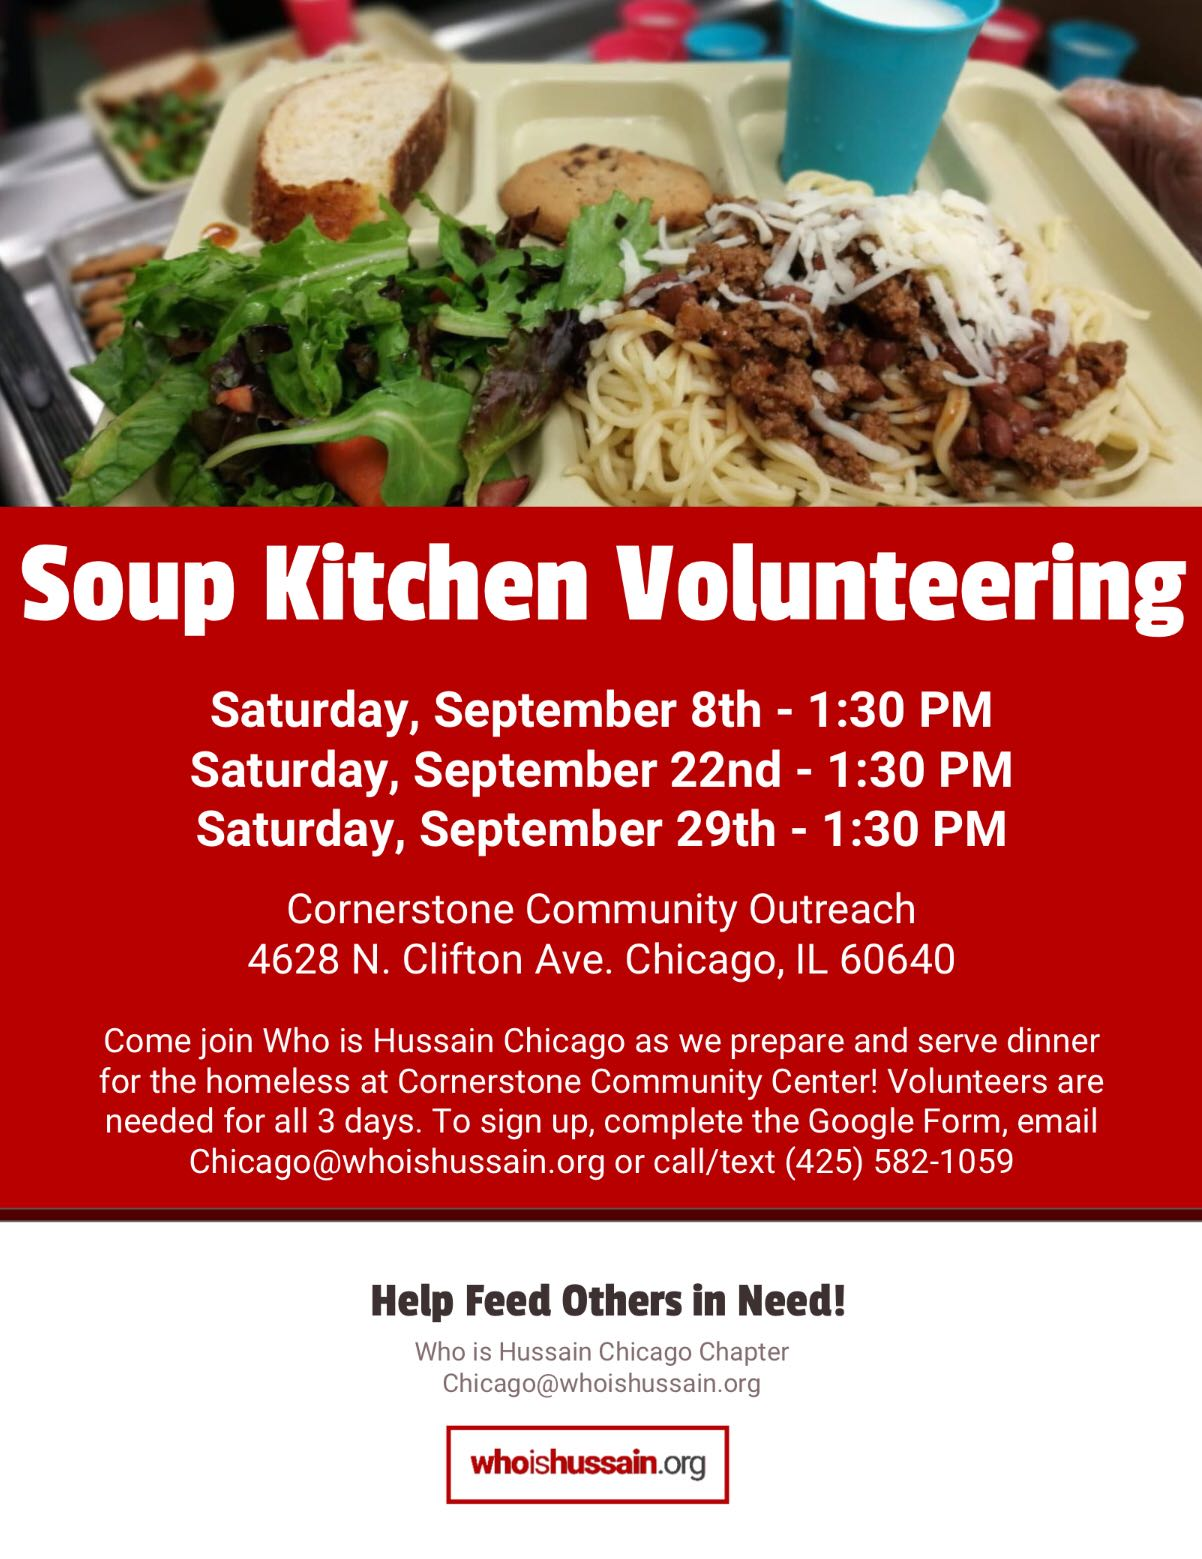 Soup Kitchen Volunteering - Who is Hussain